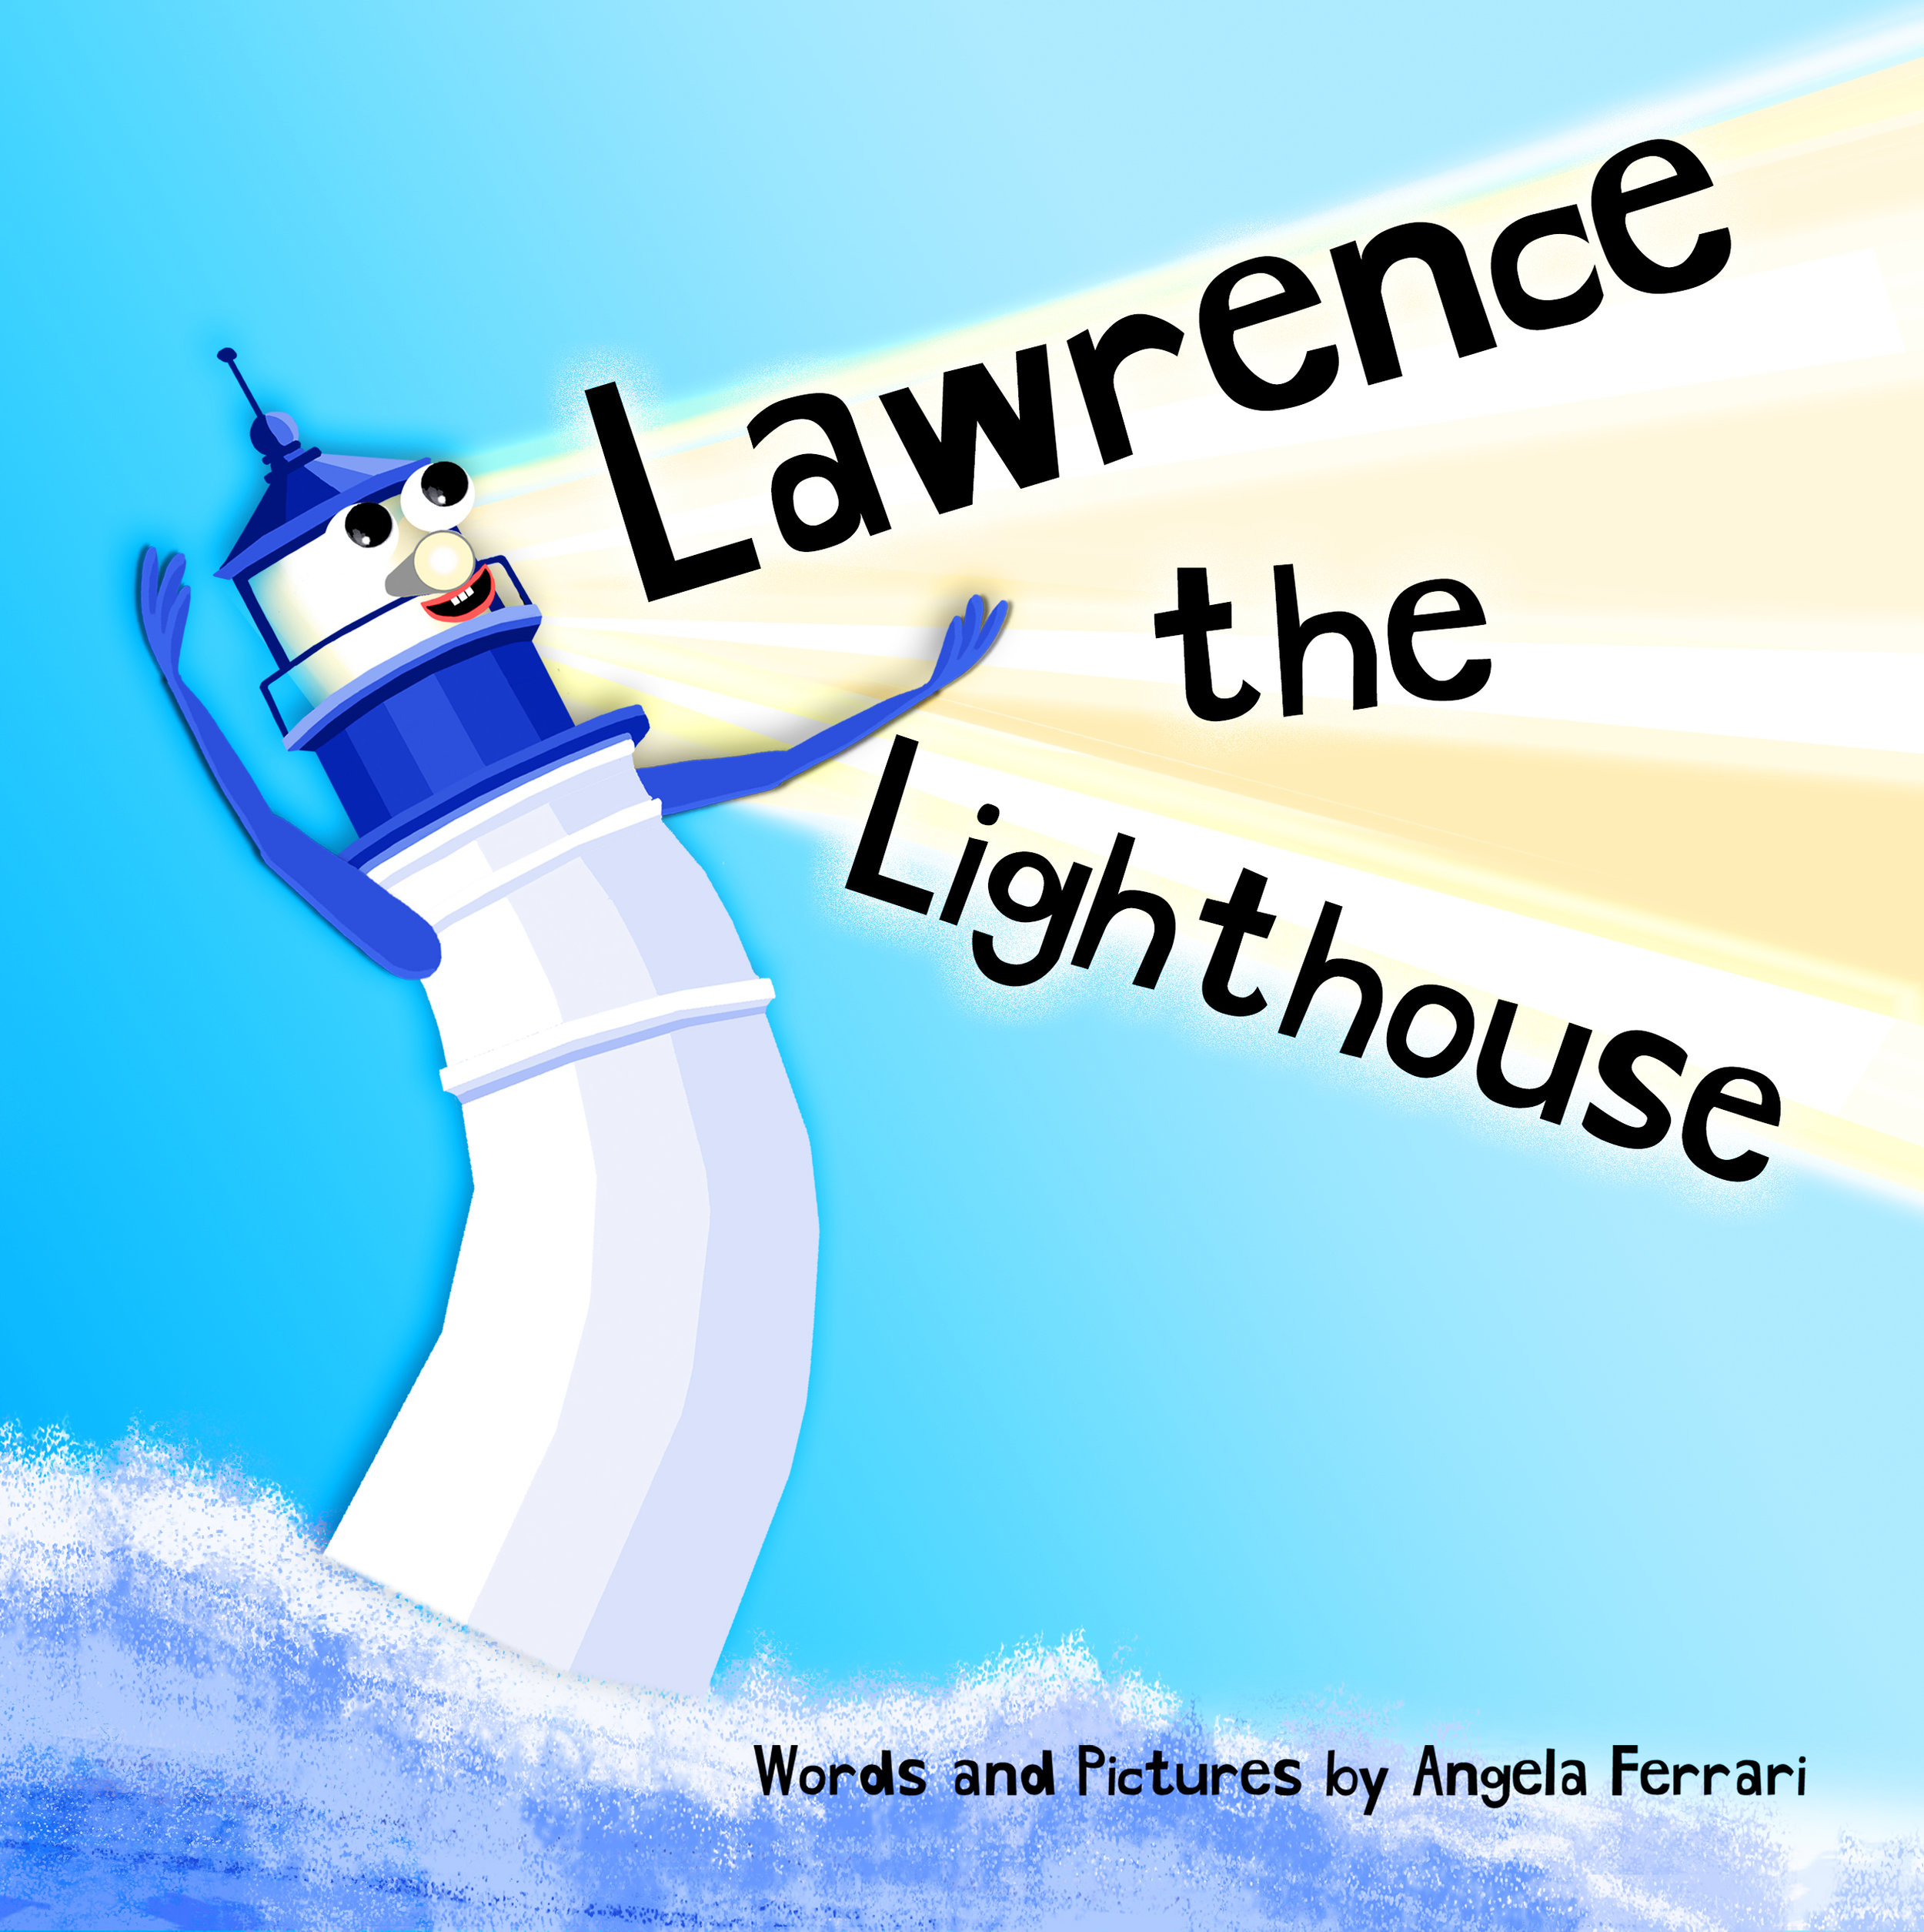 Lawrence new cover 8-1 copy.jpg